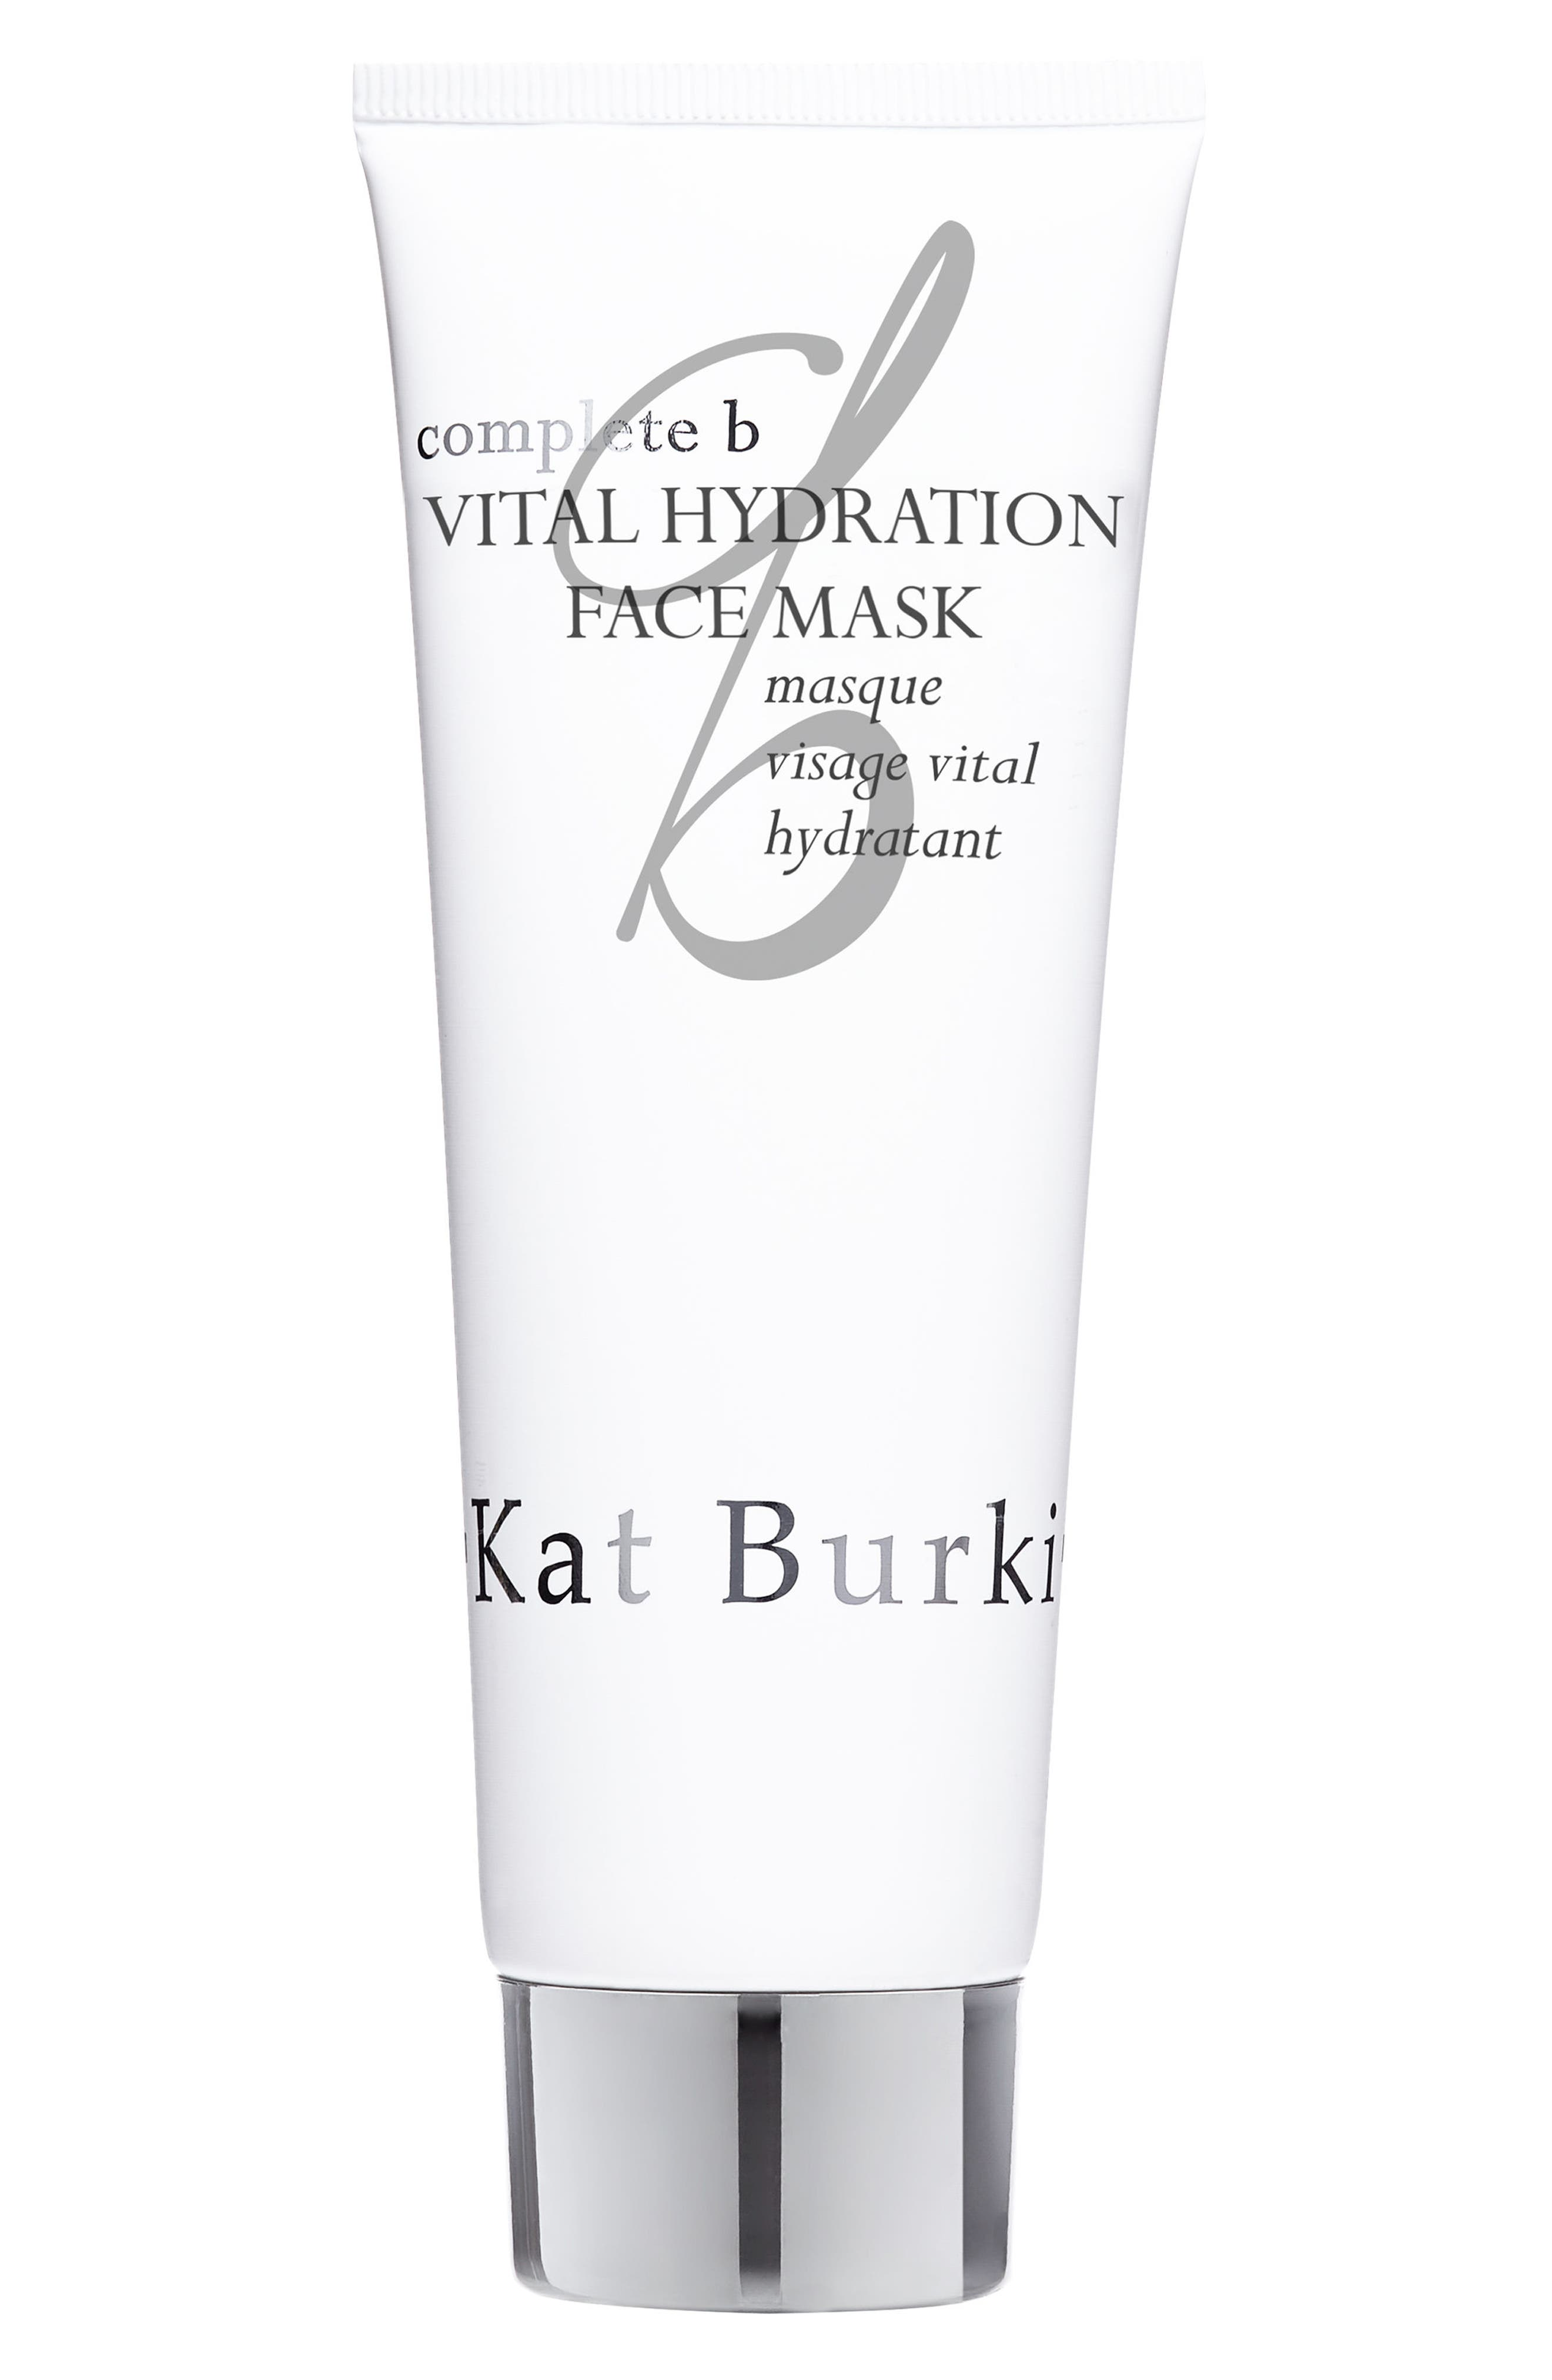 COMPLETE B VITAL HYDRATION FACE MASK